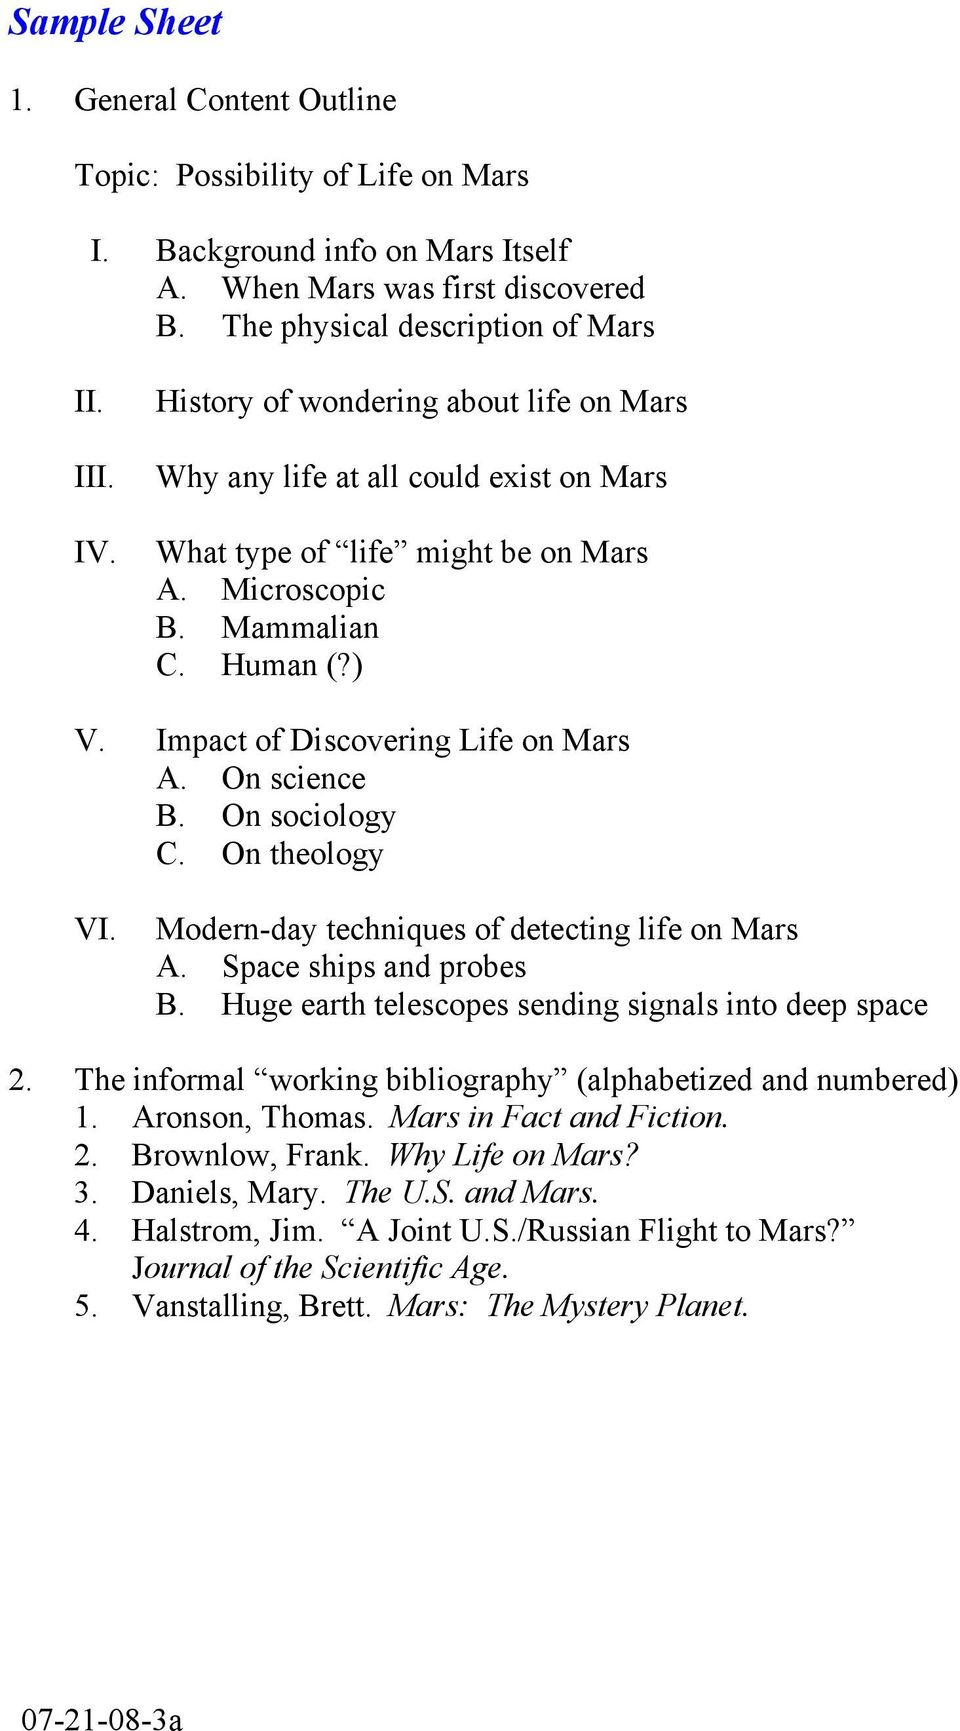 On science B. On sociology C. On theology VI. Modern-day techniques of detecting life on Mars A. Space ships and probes B. Huge earth telescopes sending signals into deep space 2.